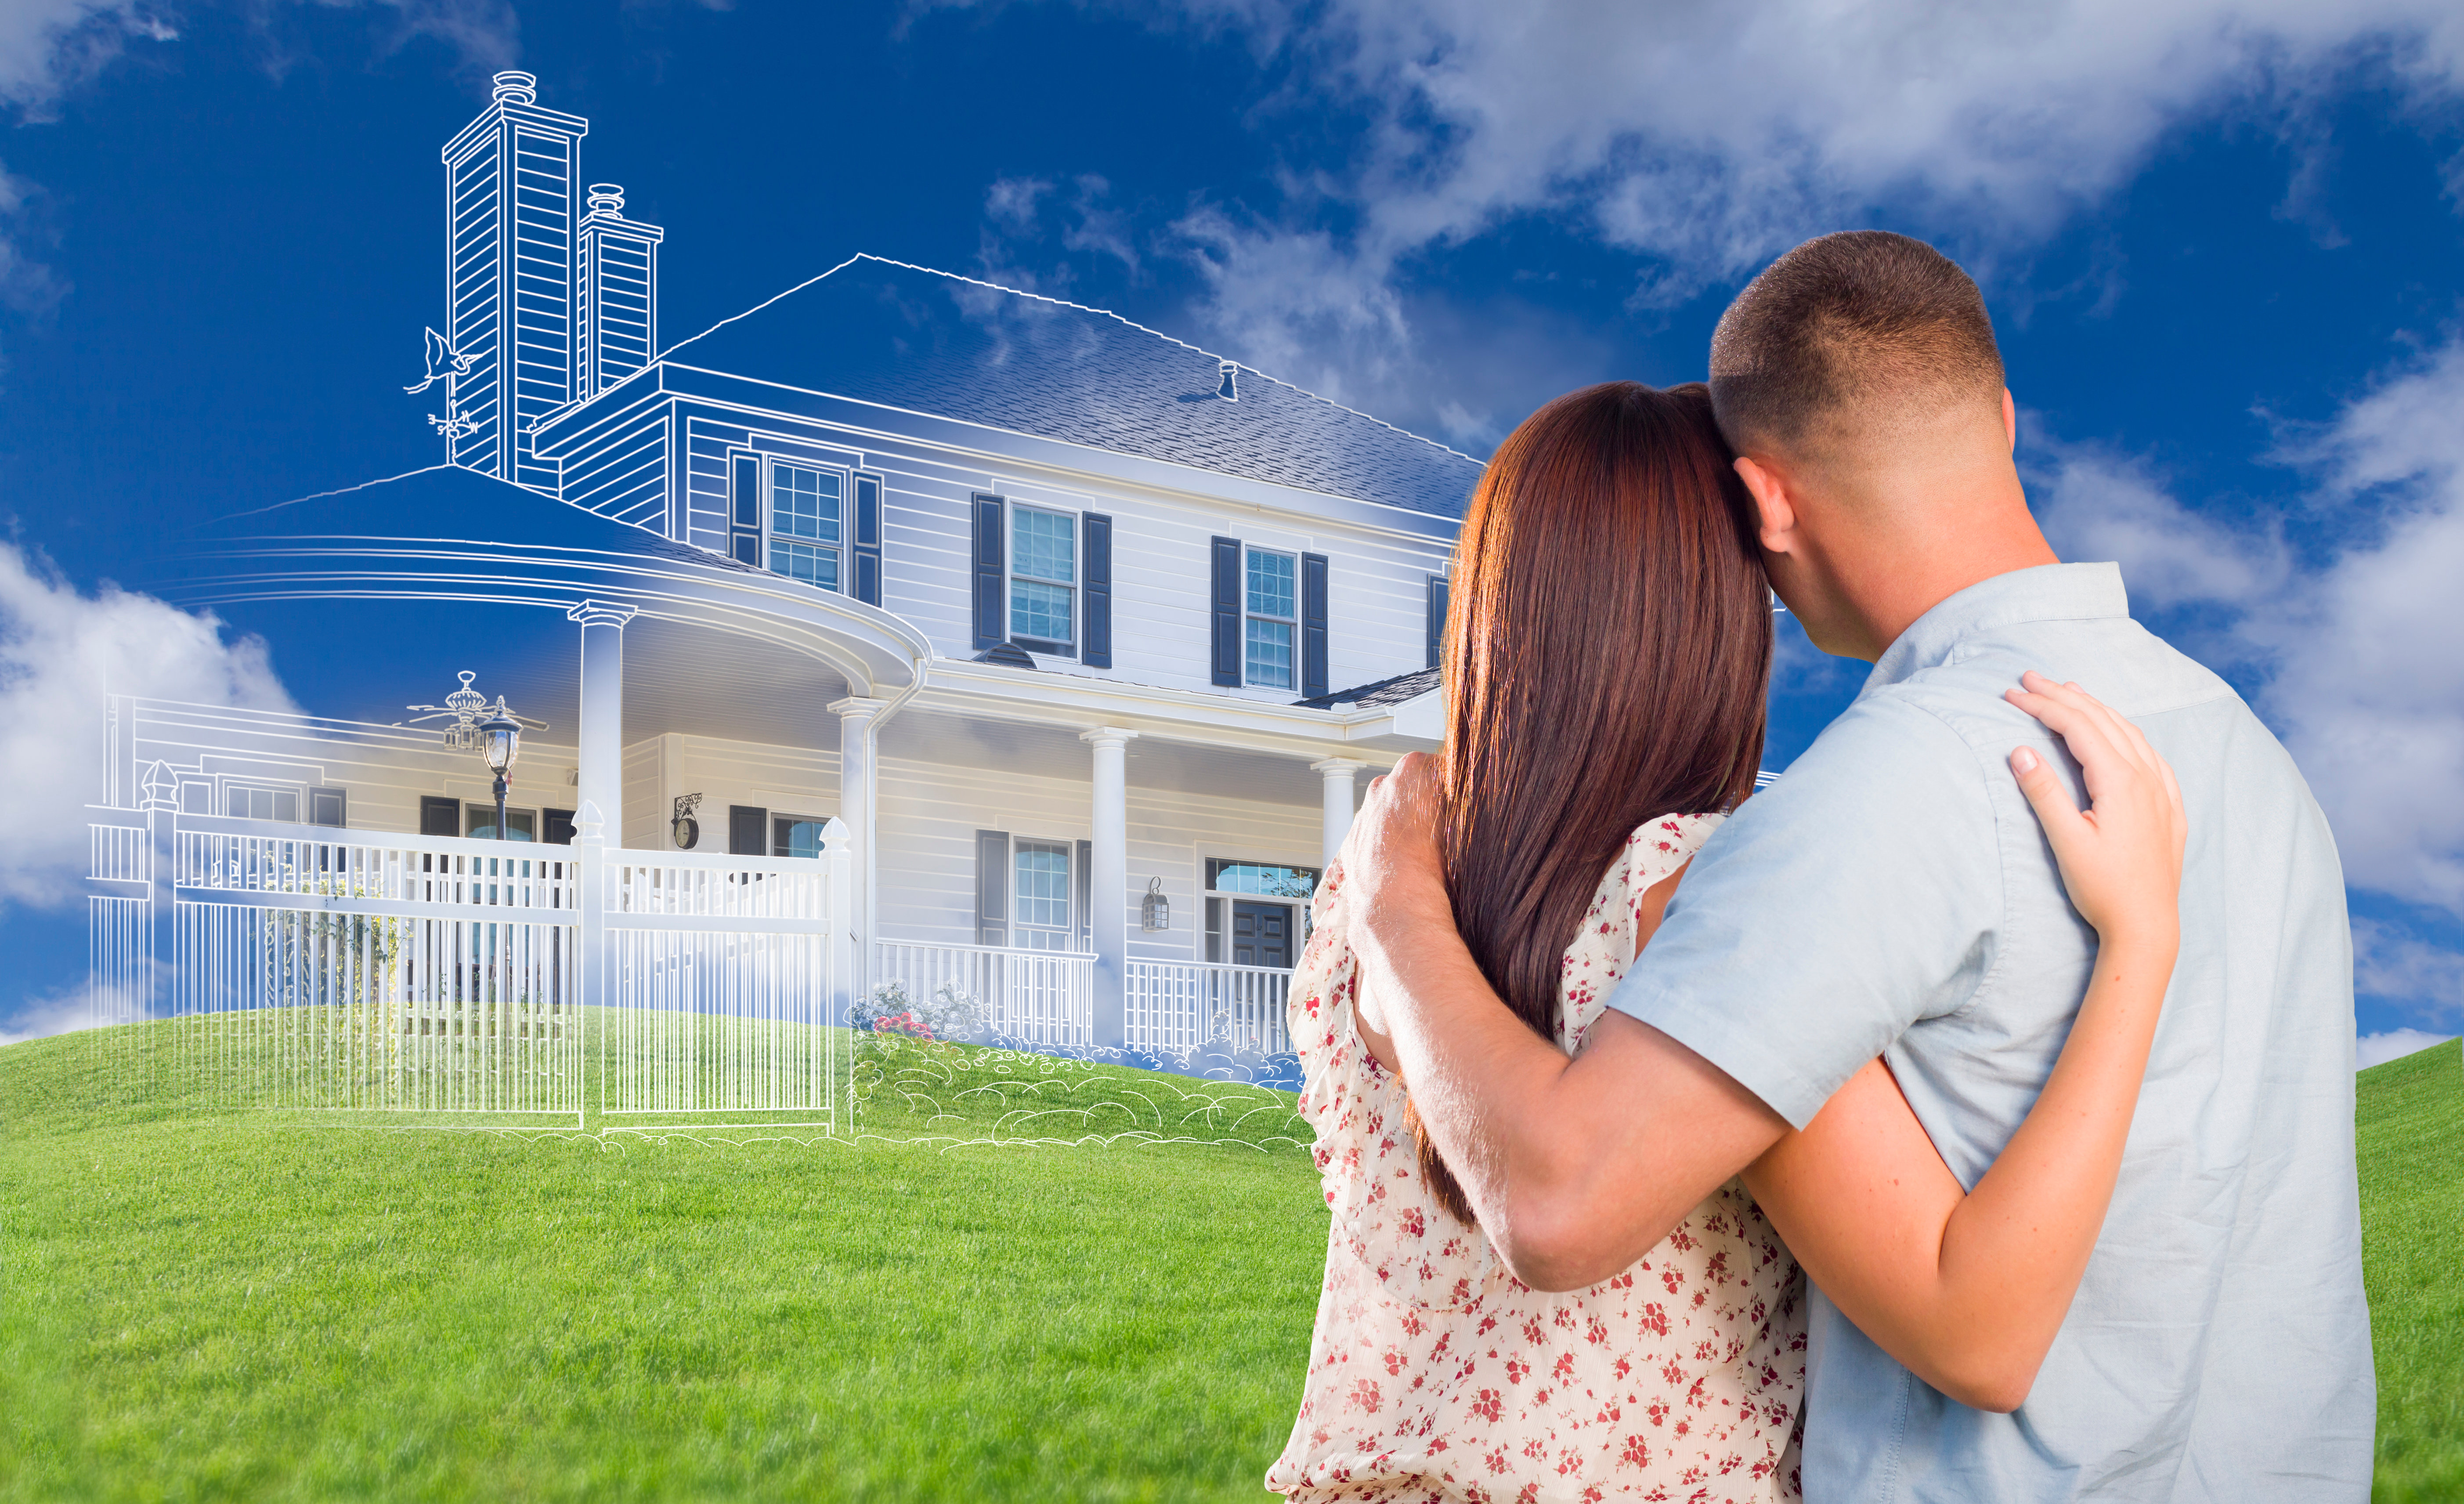 How to Buy Land and Build a Home